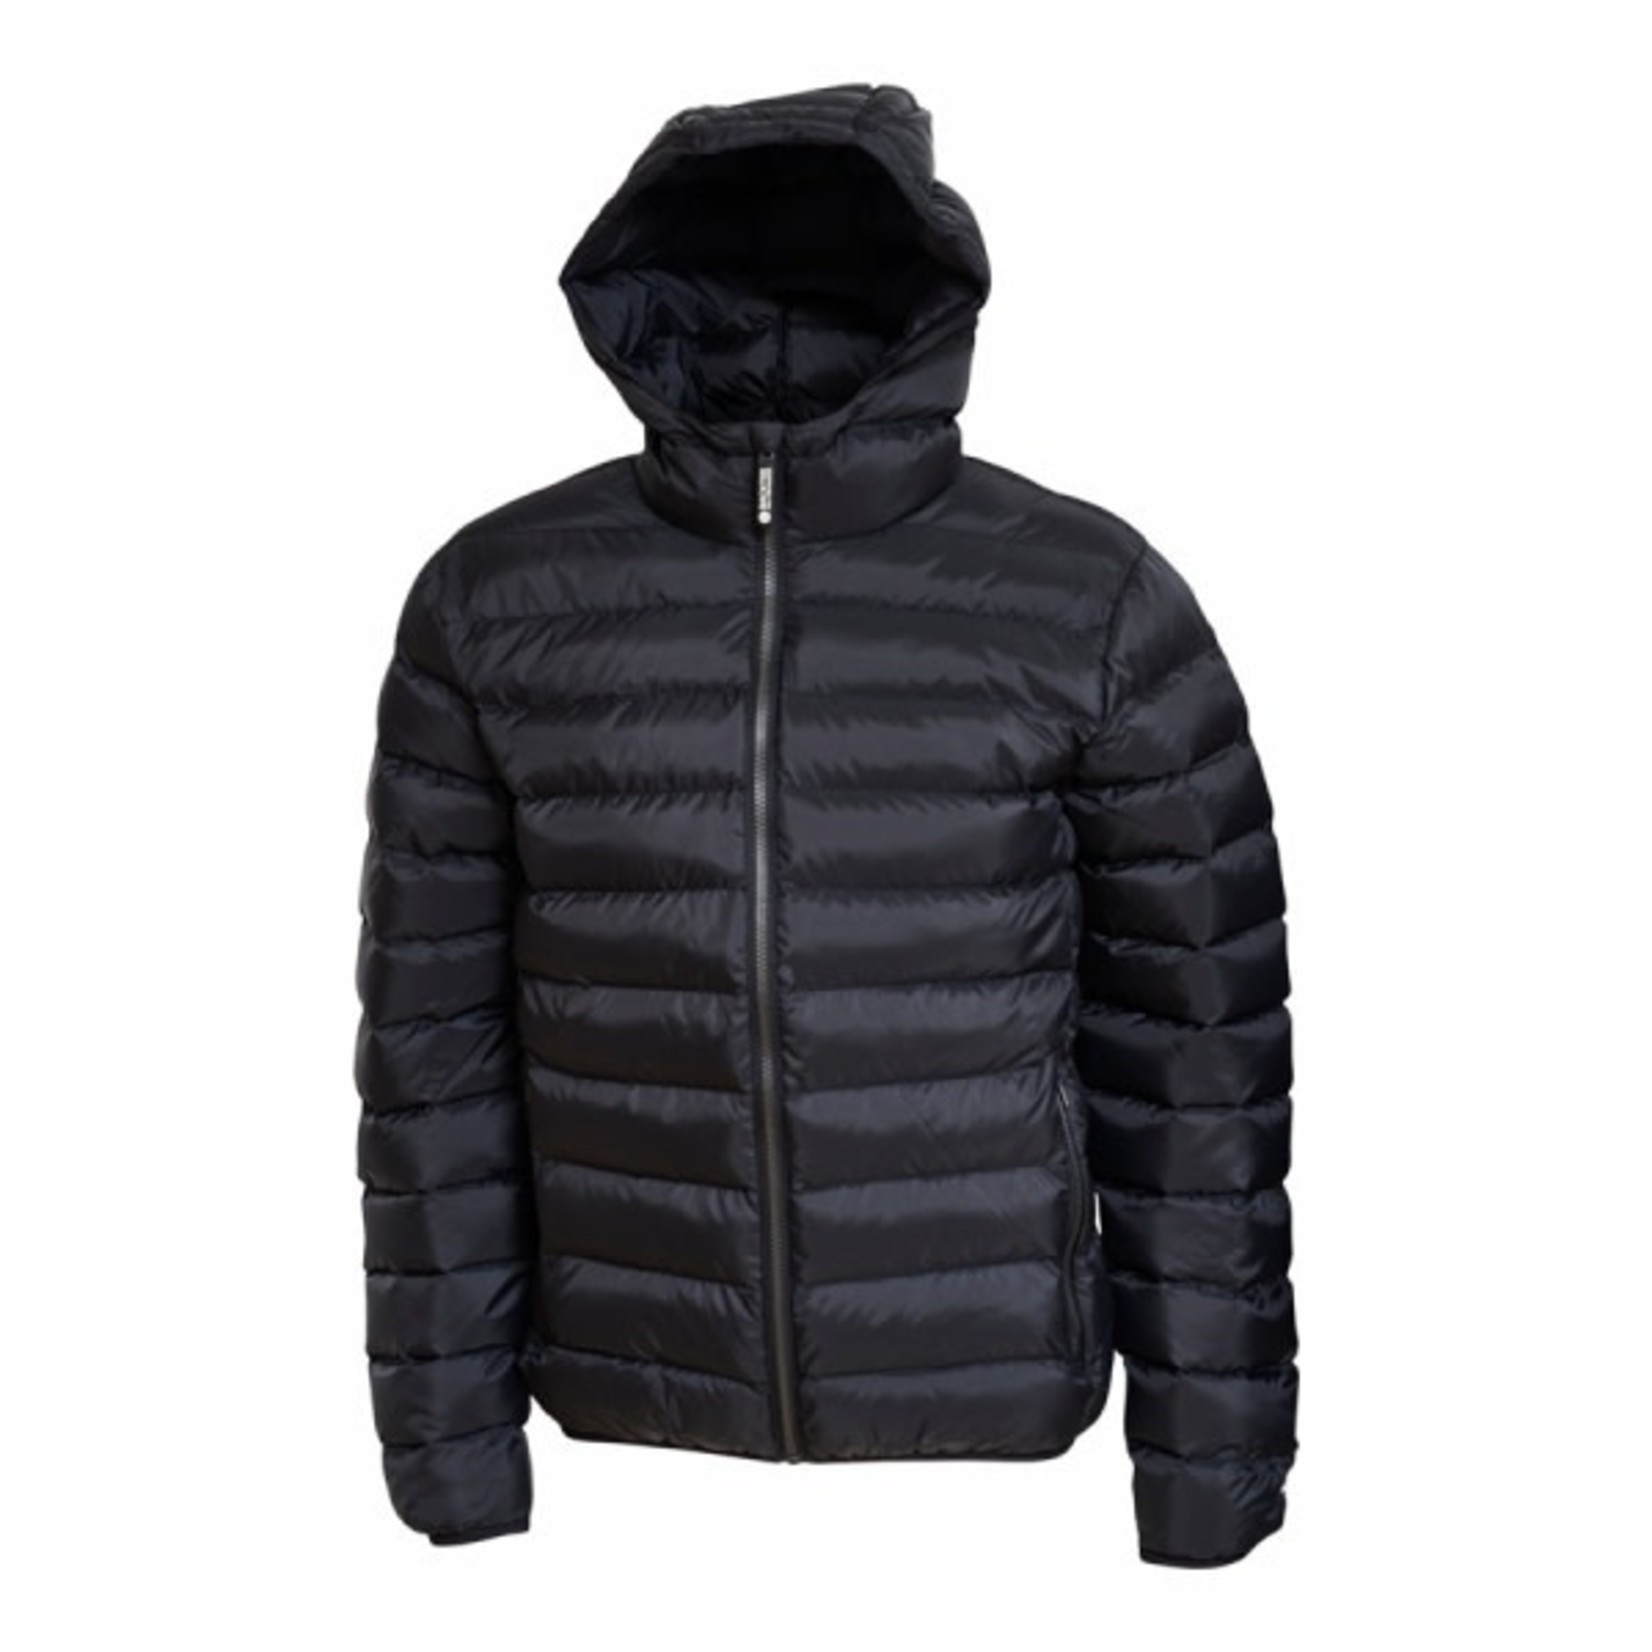 Backtee Backtee Mens Recycled Panel Jacket Black